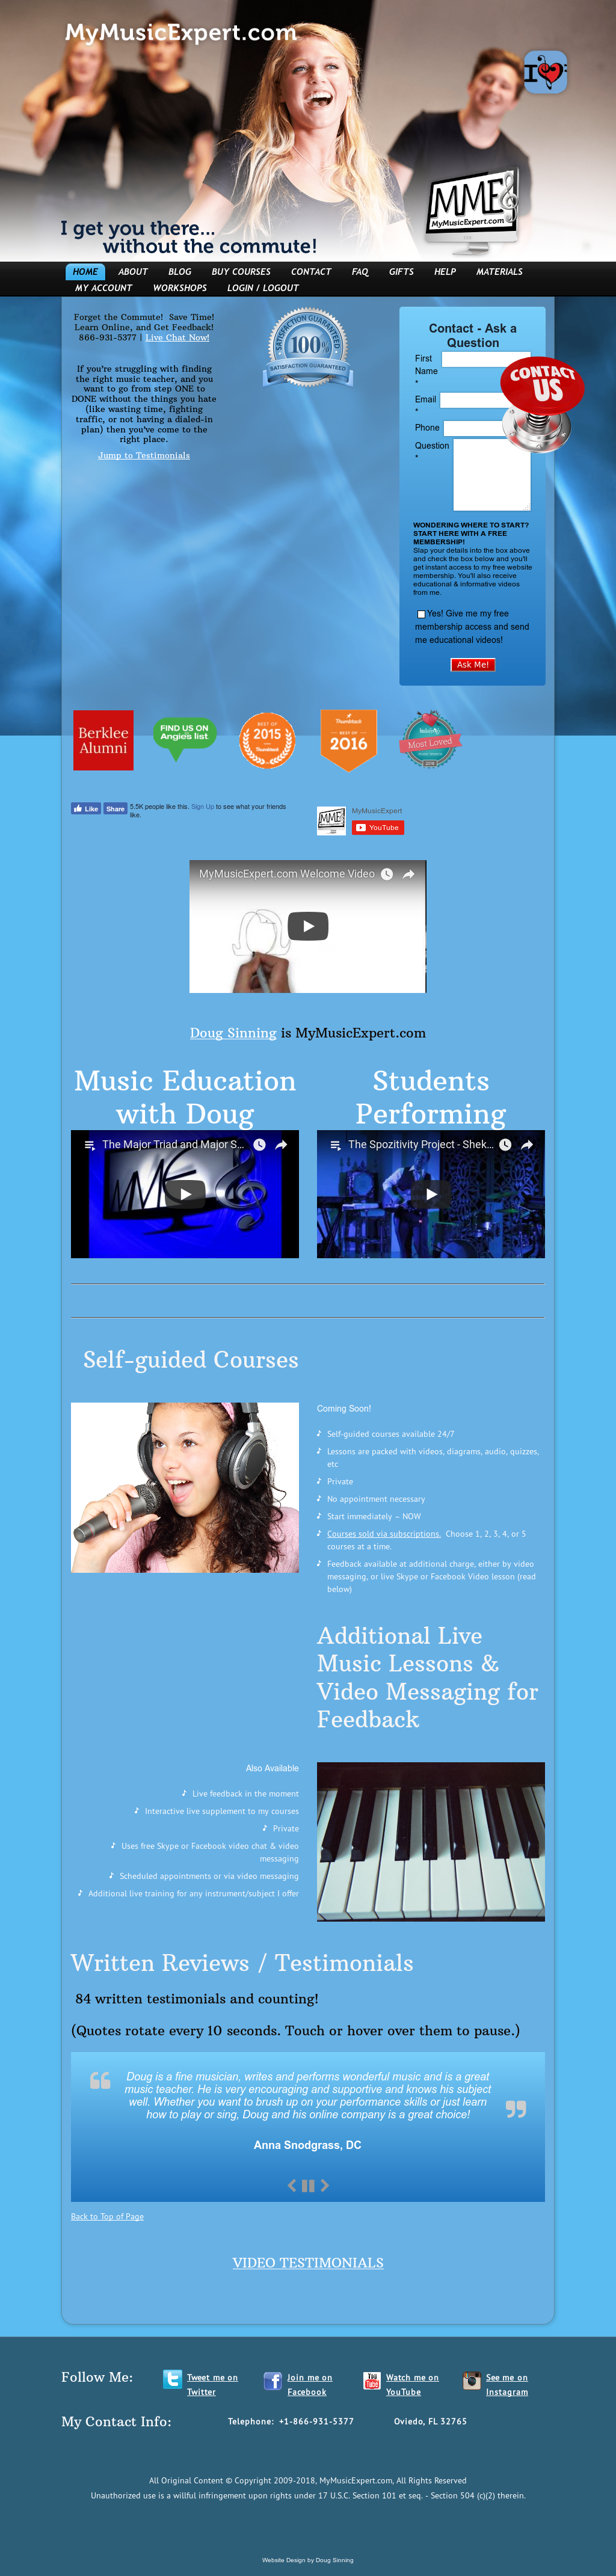 Mymusicexpert Competitors, Revenue and Employees - Owler